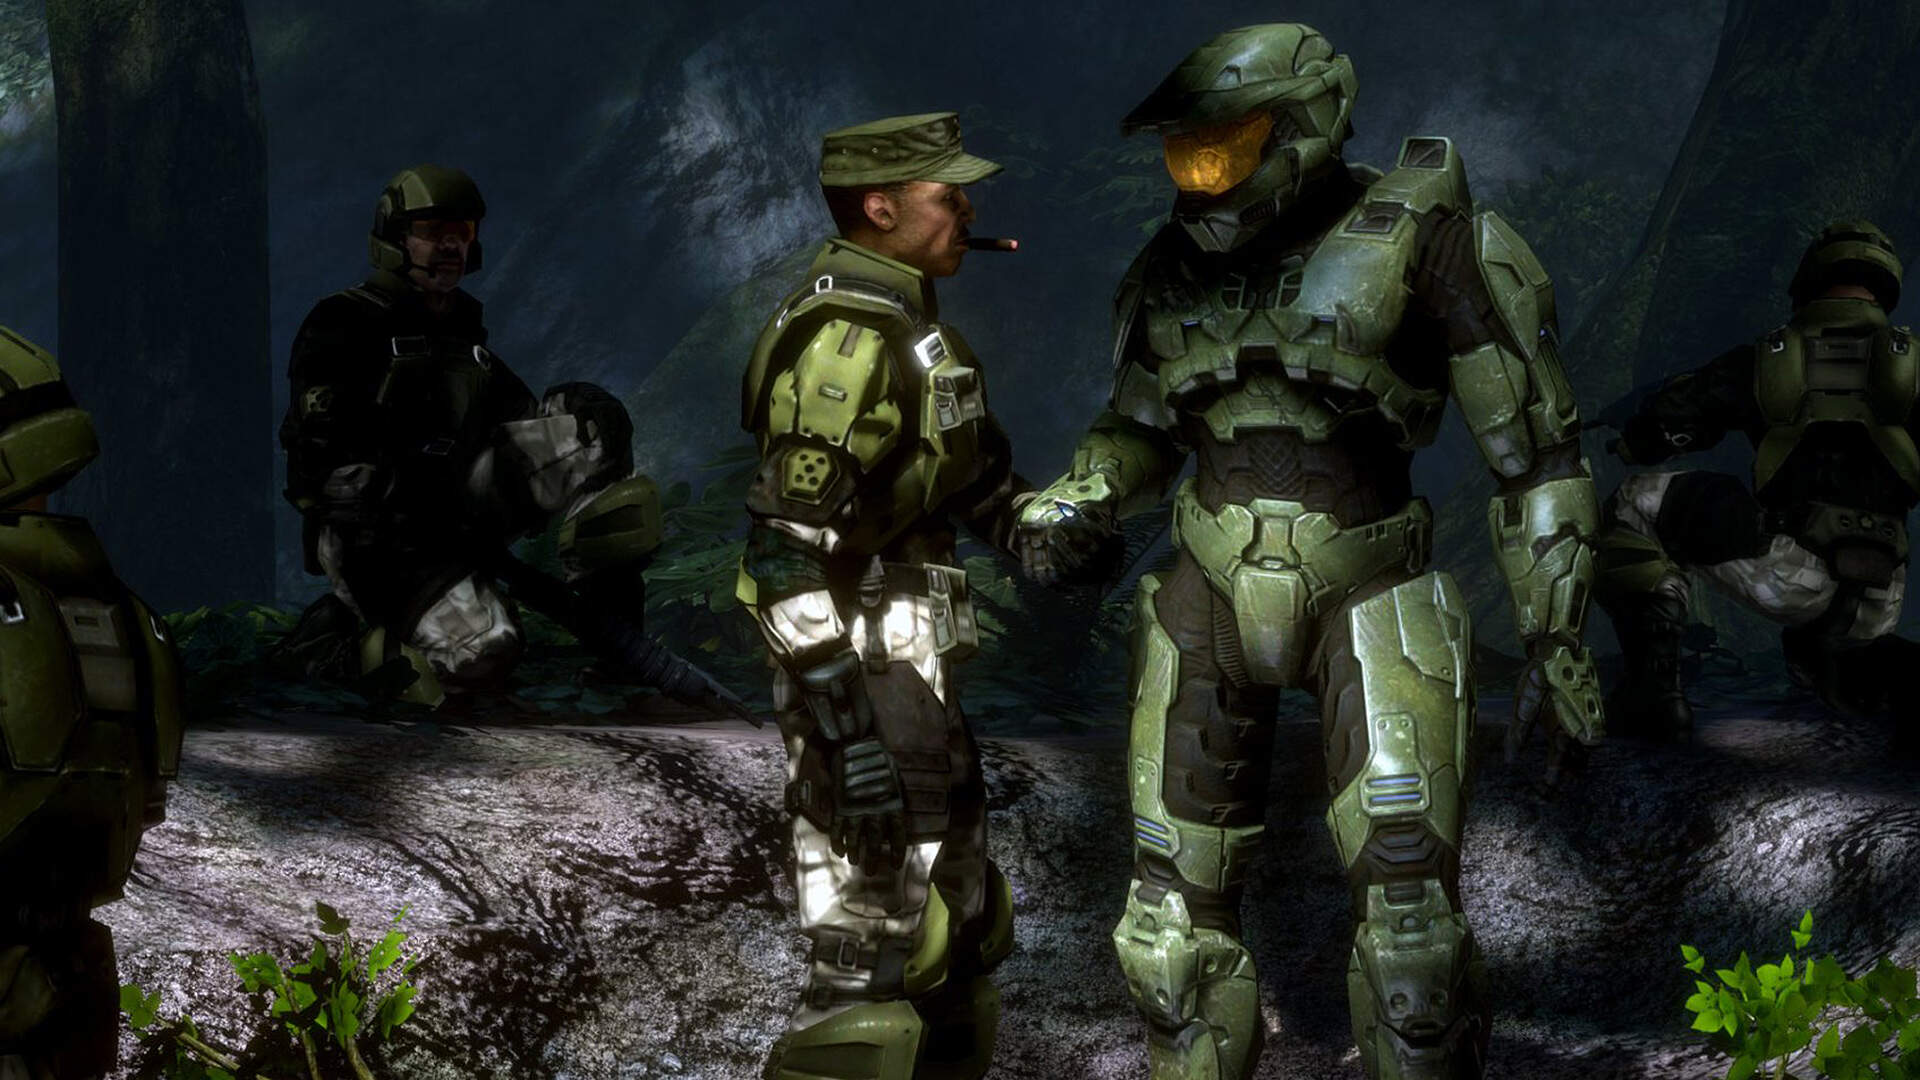 Halo 3's PC Master Chief Collection Debut Will Come With an Unlockable Jetpack Mode